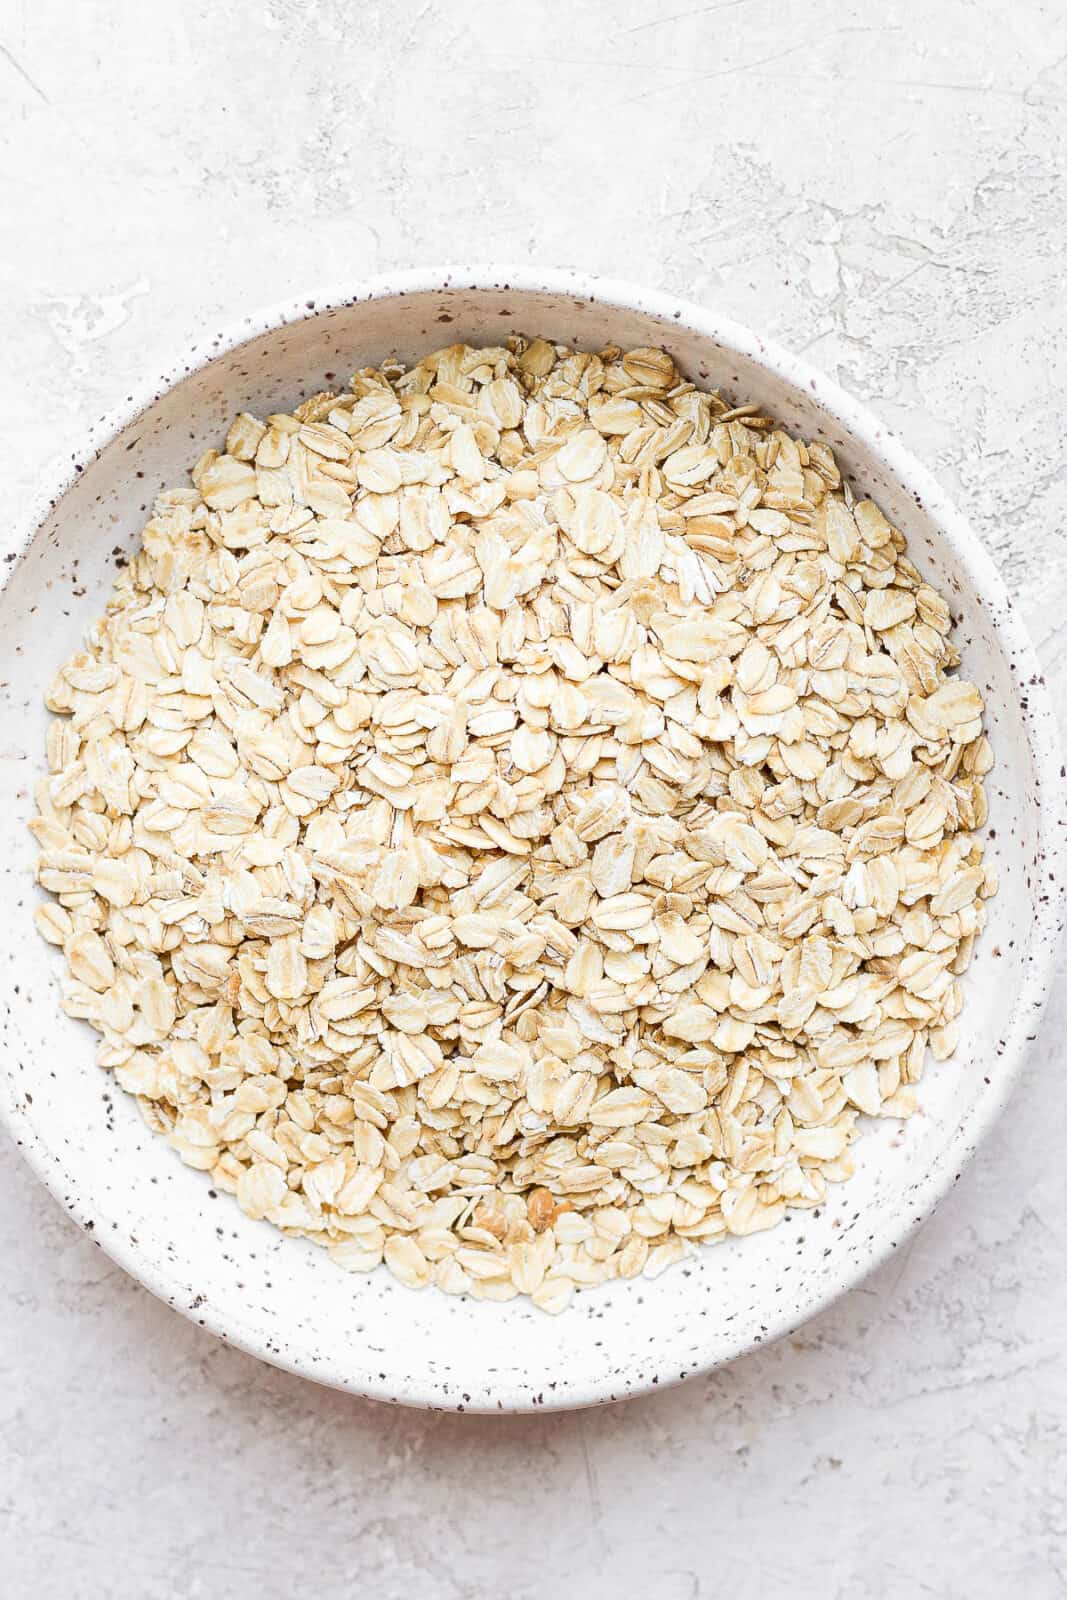 Rolled oats in a bowl.